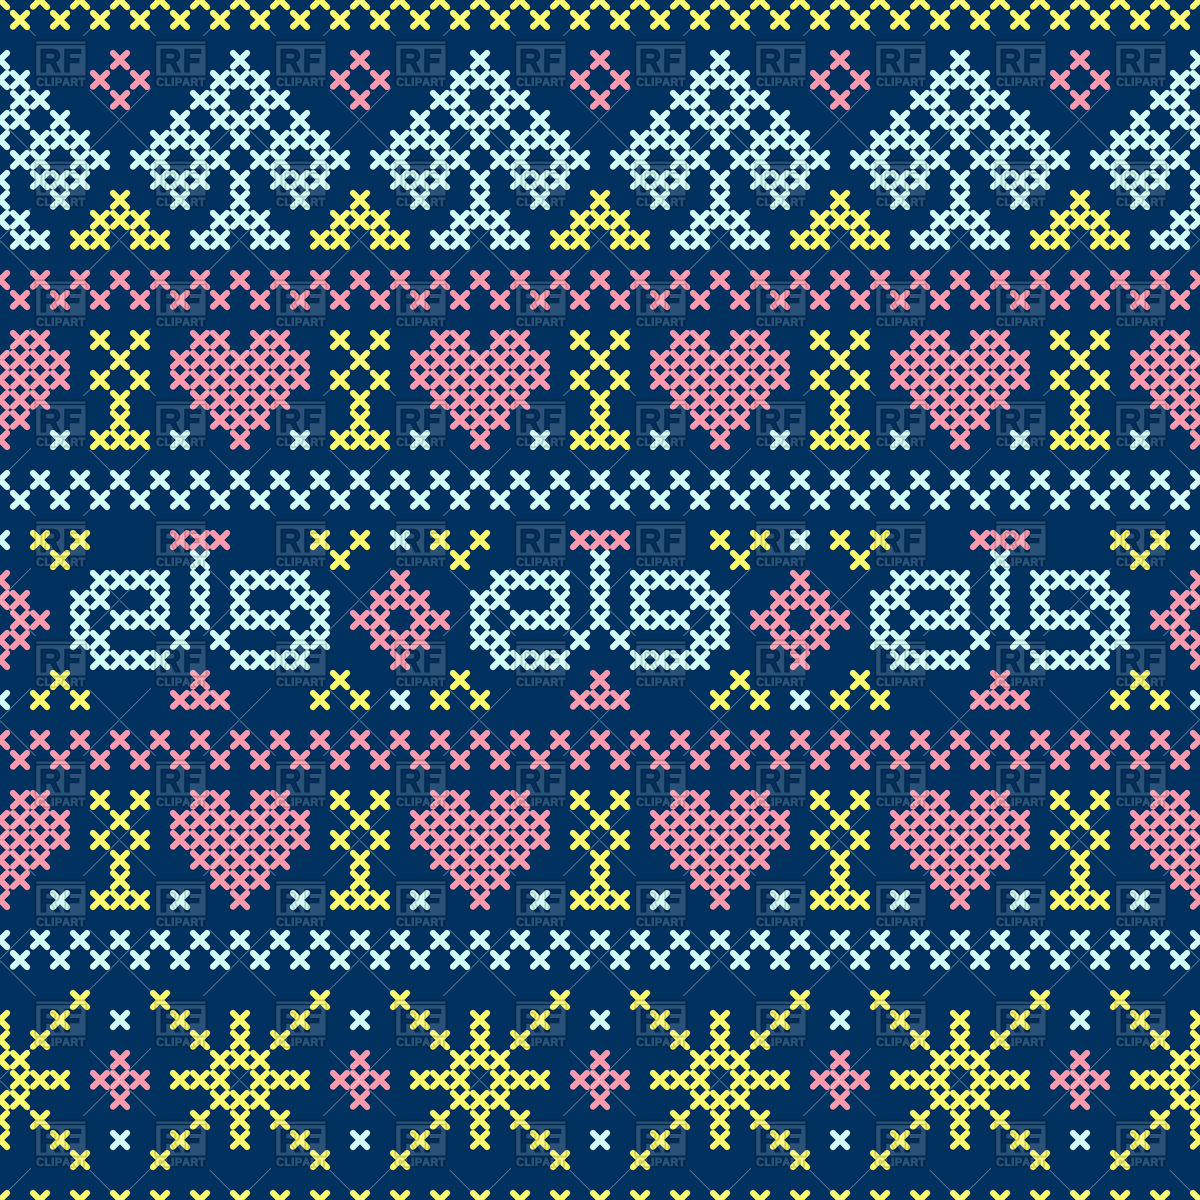 1200x1200 Seamless Embroidery Cross Stitch Style Pattern Vector Image